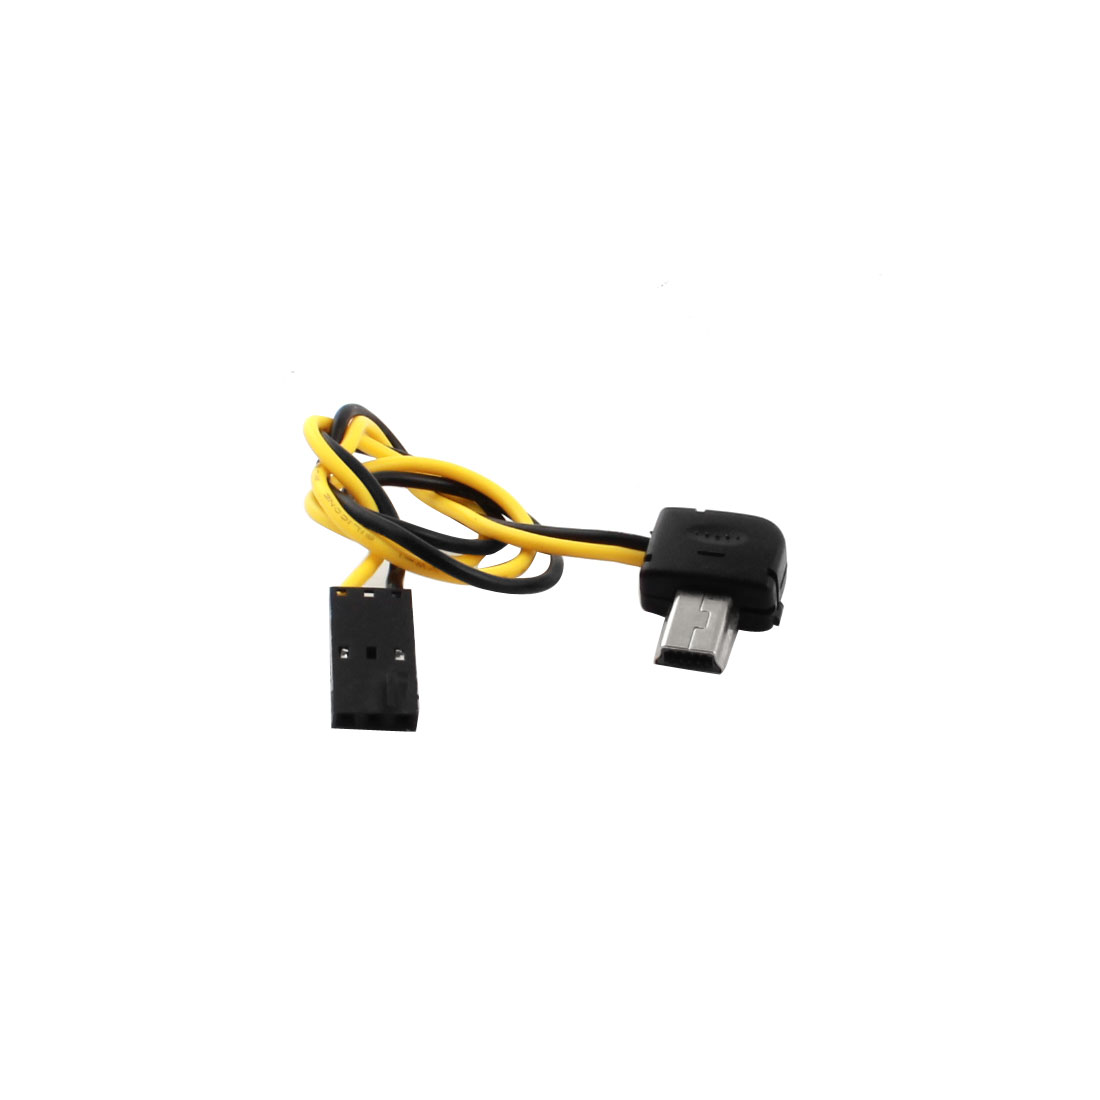 Real Time AV Video Transmitter Output Cable for Gopro Hero 3 FPV Camera